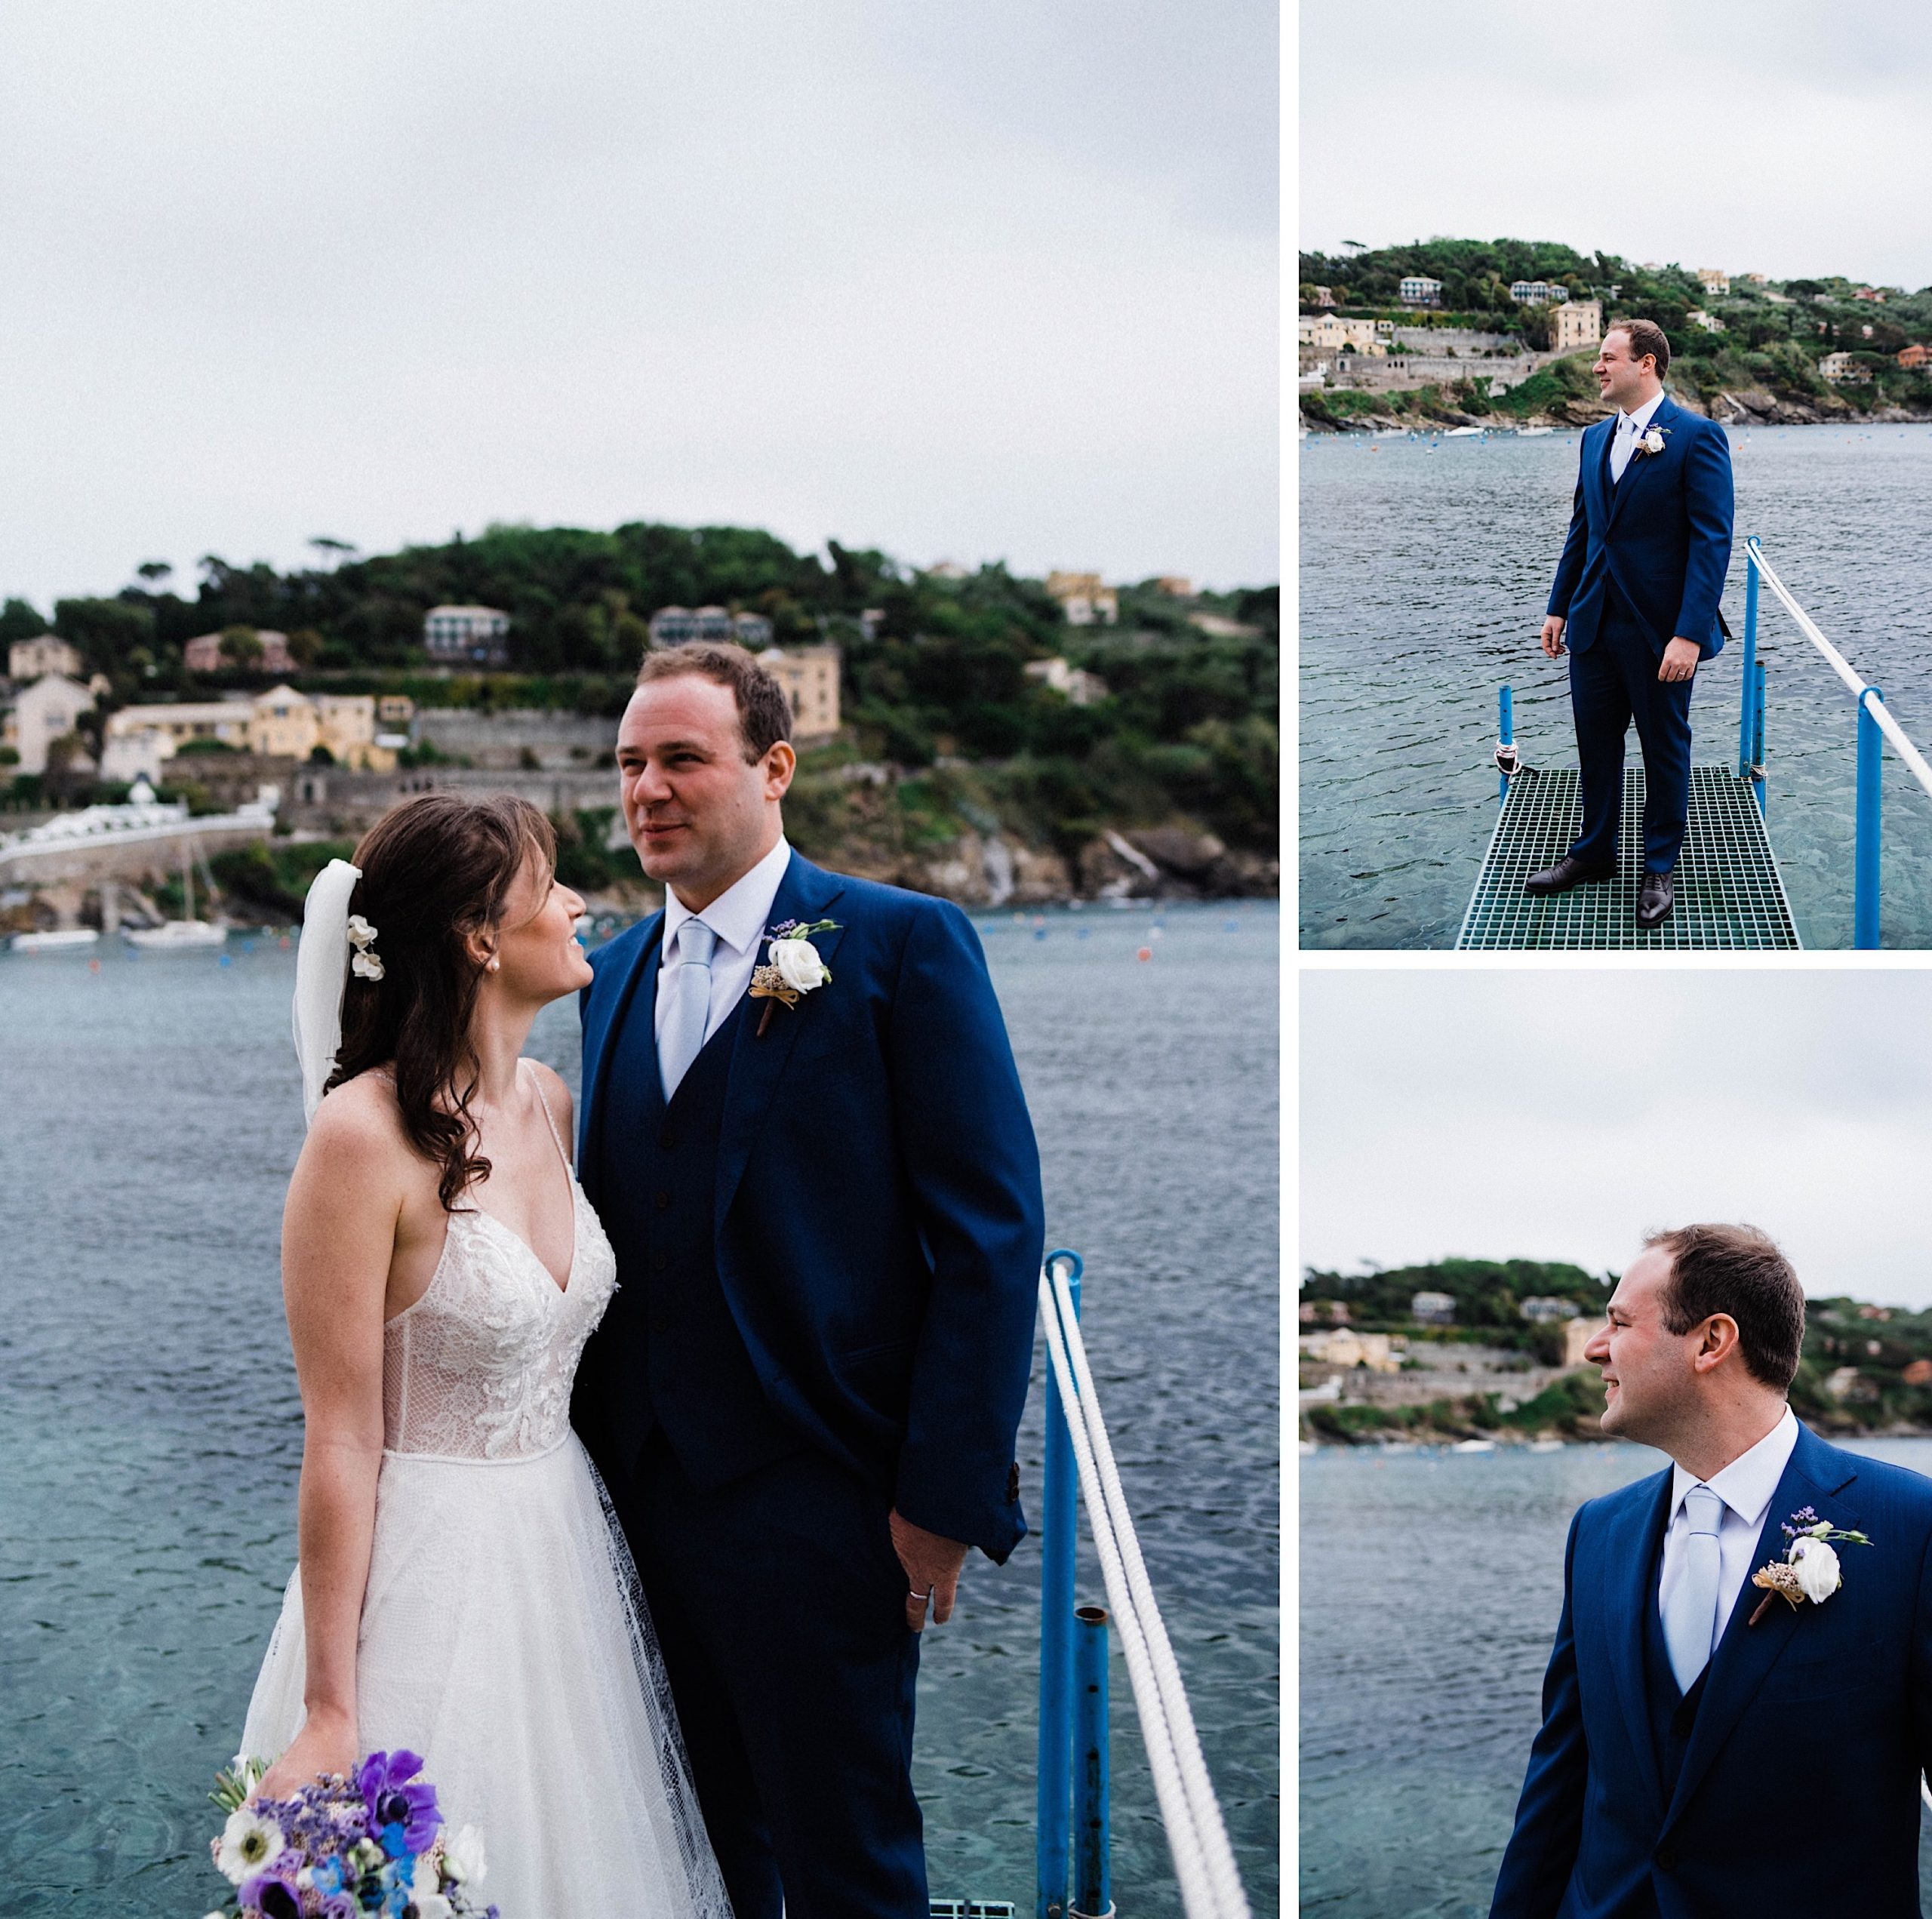 Three Destination Wedding Photos - one of a bride & groom standing together, and two of the groom looking out over the Bay of Silence.